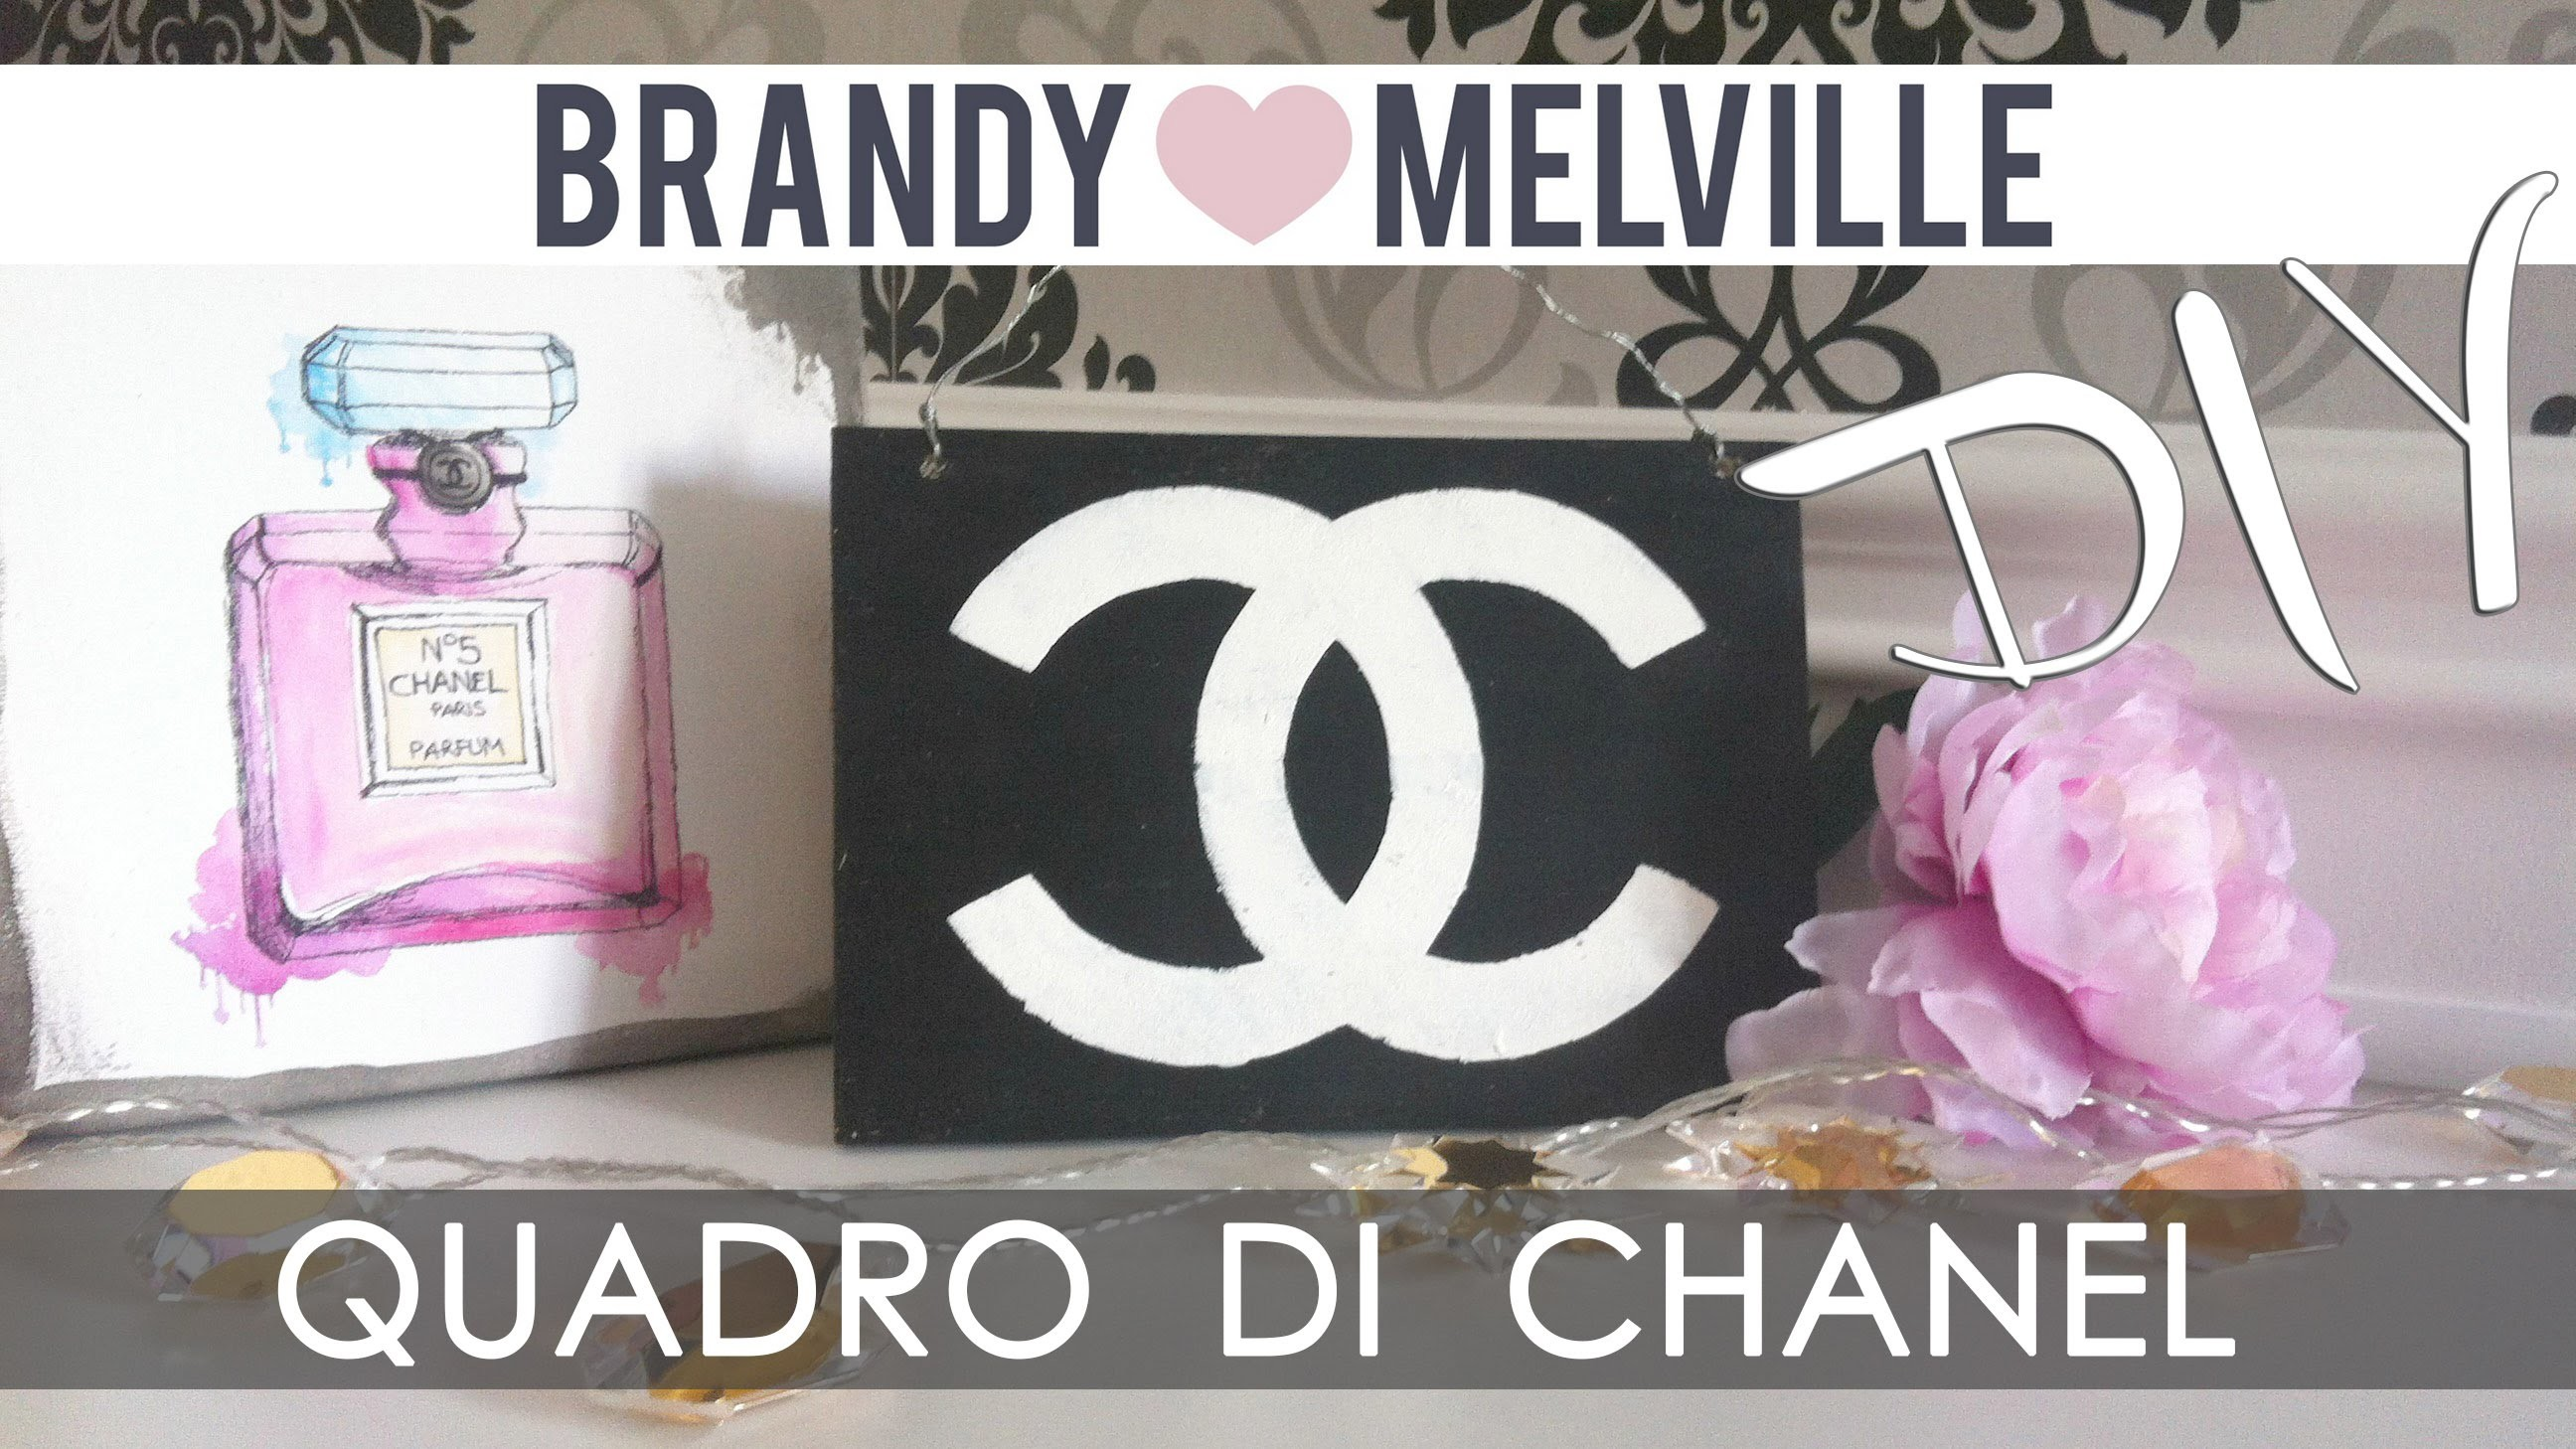 ❤ DIY Room Decor : Quadretto con logo CHANEL ispirato a Brandy Melville